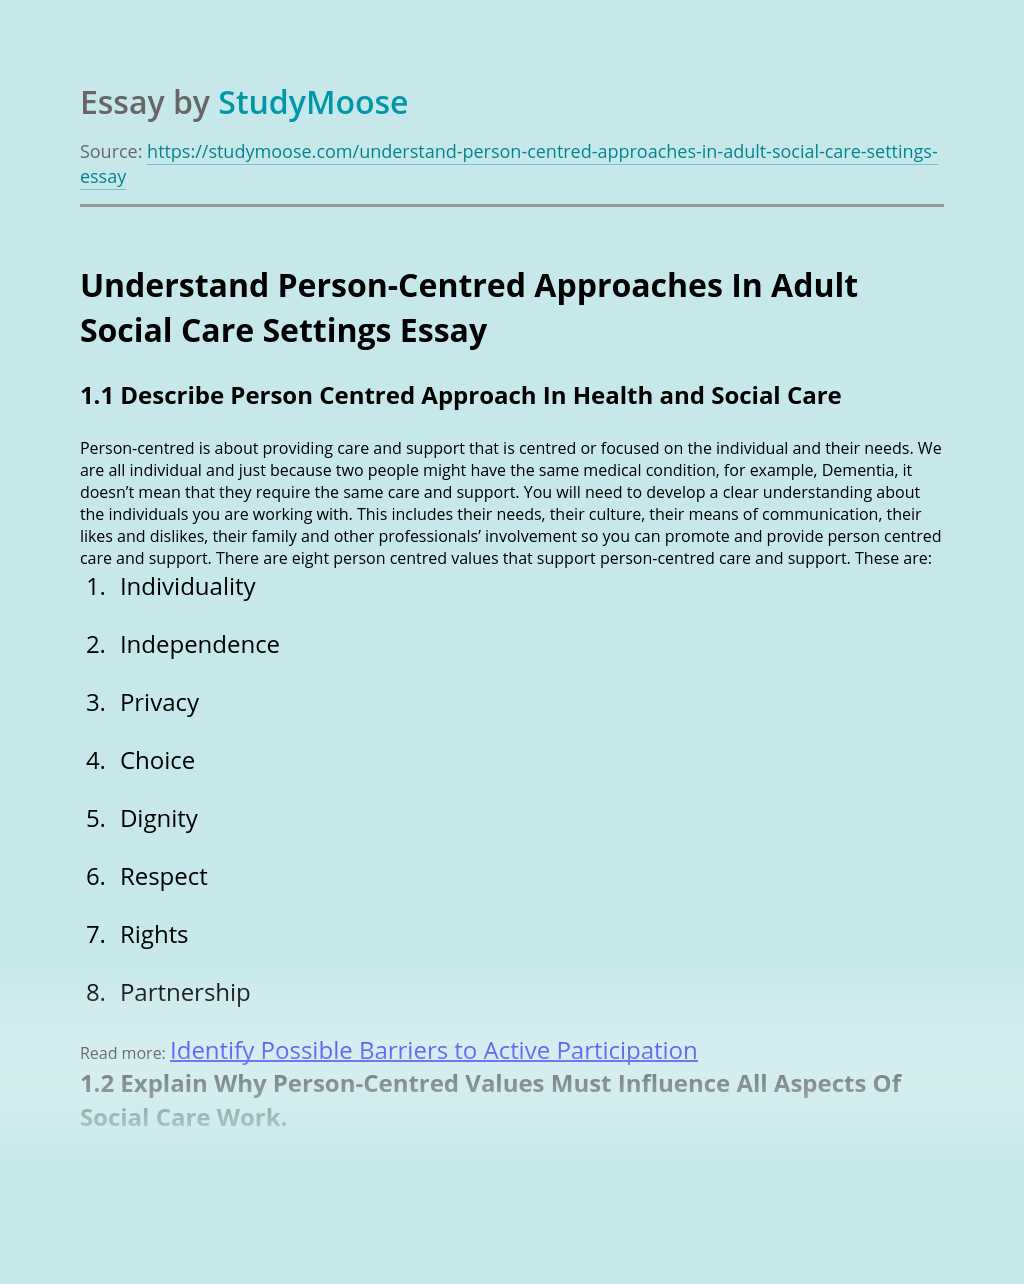 Understand Person-Centred Approaches In Adult Social Care Settings